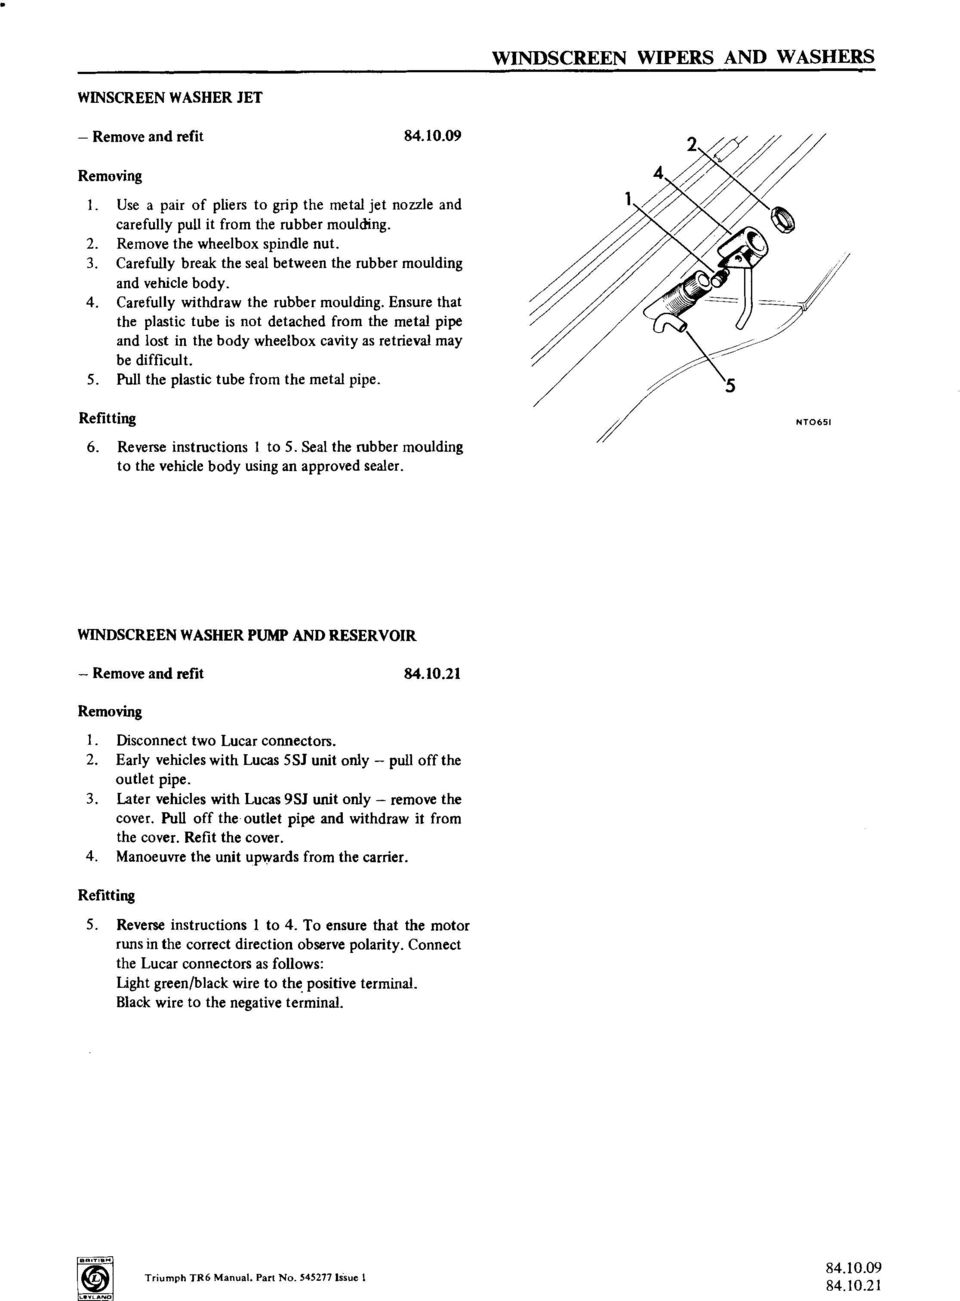 Windscreen Wipers And Washers Operations Pdf Wiring Diagram Motor Honda Supra X 125 In The Body Wheelbox Cavity As Retrieval May Be Difficult 5 Pull Plastic Tube From